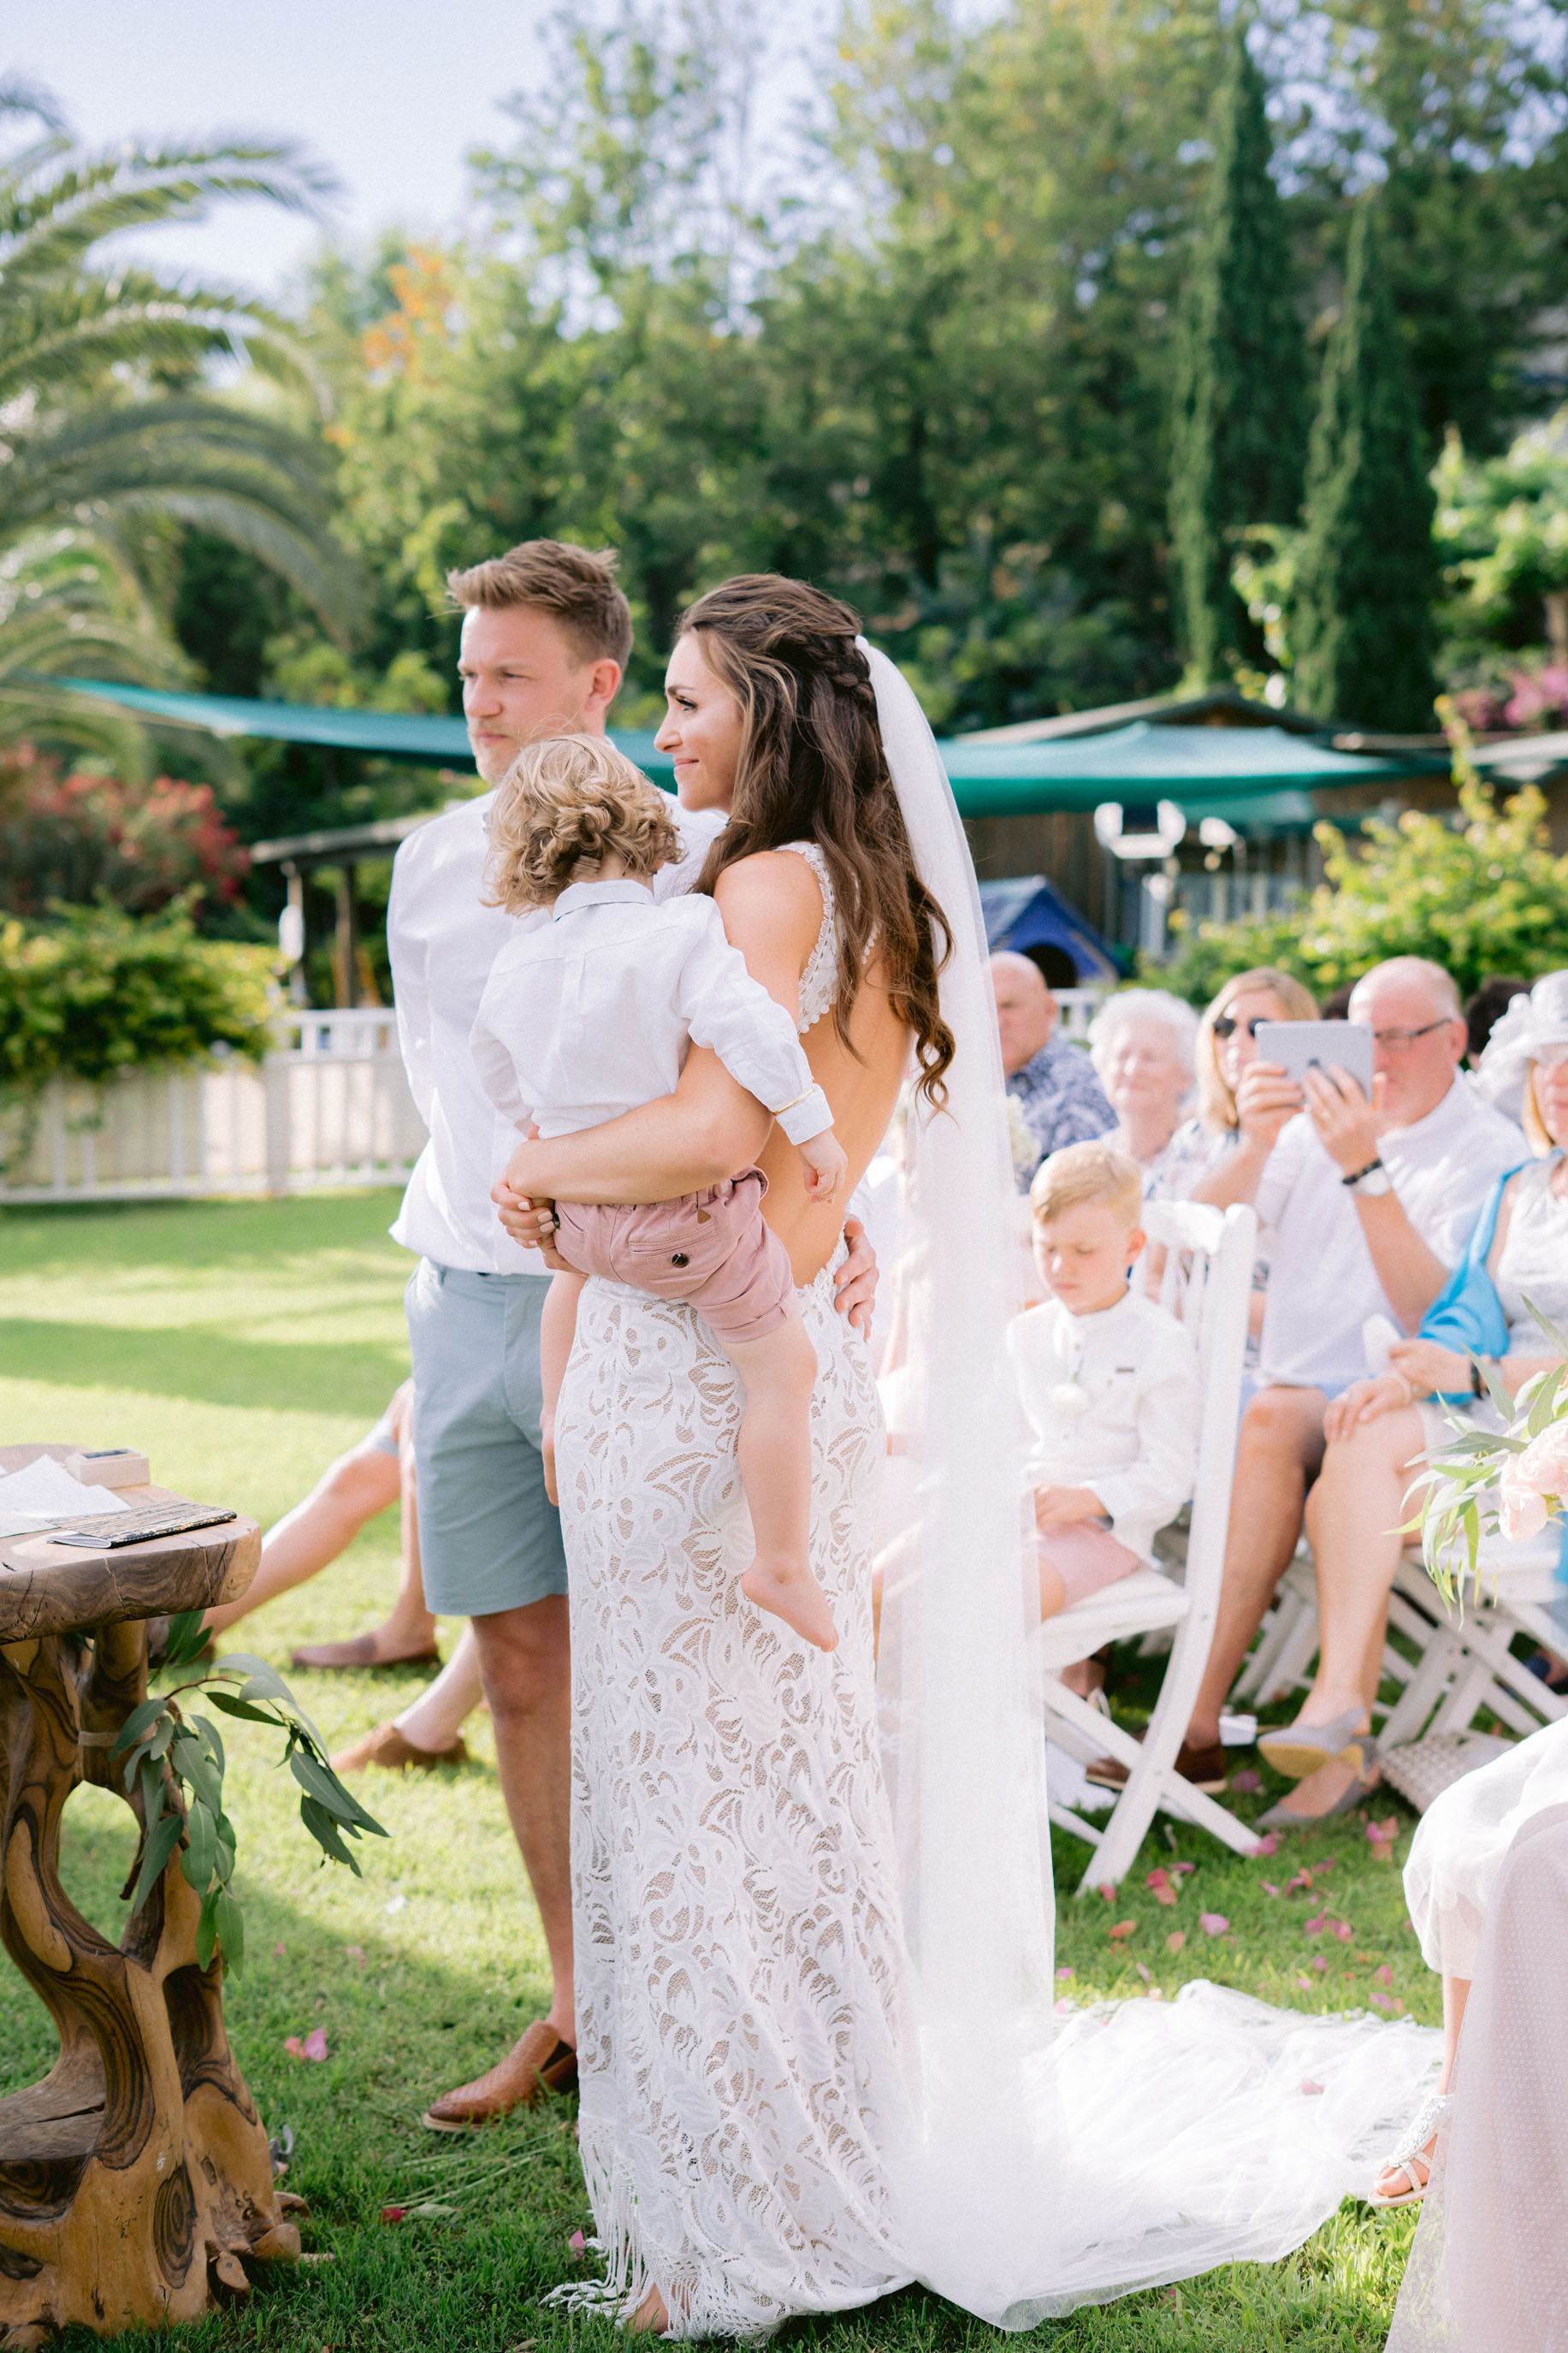 A touching moment where little Harrison joinging his mummy, beautiful bride Fran for her wedding vows, Fran wears a stunning lace dress from Grace Loves Lace